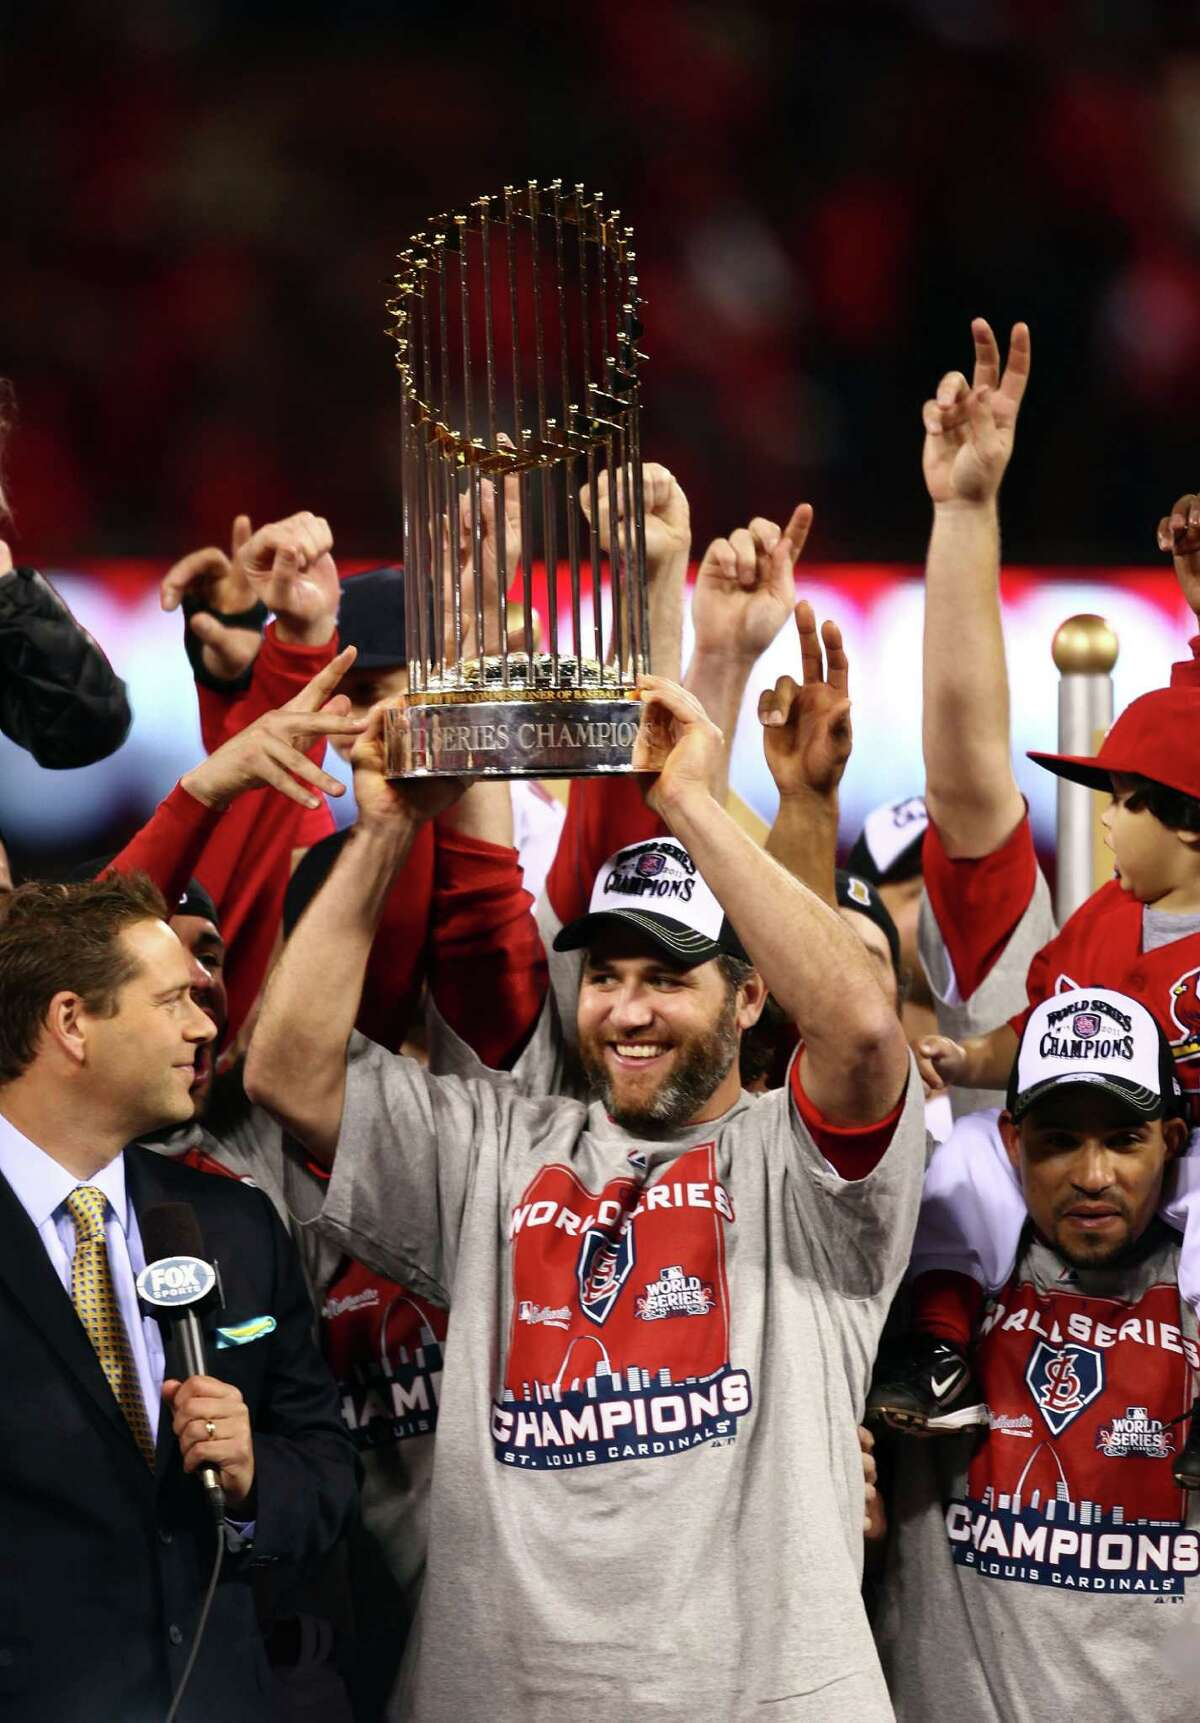 The former New Braunfels Canyon star, rebounding from largely miserable stints with the Astros and Yankees in 2010, enjoyed a remarkable season with the St. Louis Cardinals. His .301 average, 31 home runs, 94 RBIs and sixth All-Star Game appearance helped spearhead the Cardinals' World Series championship and garnered a National League Comeback Player of the Year award.